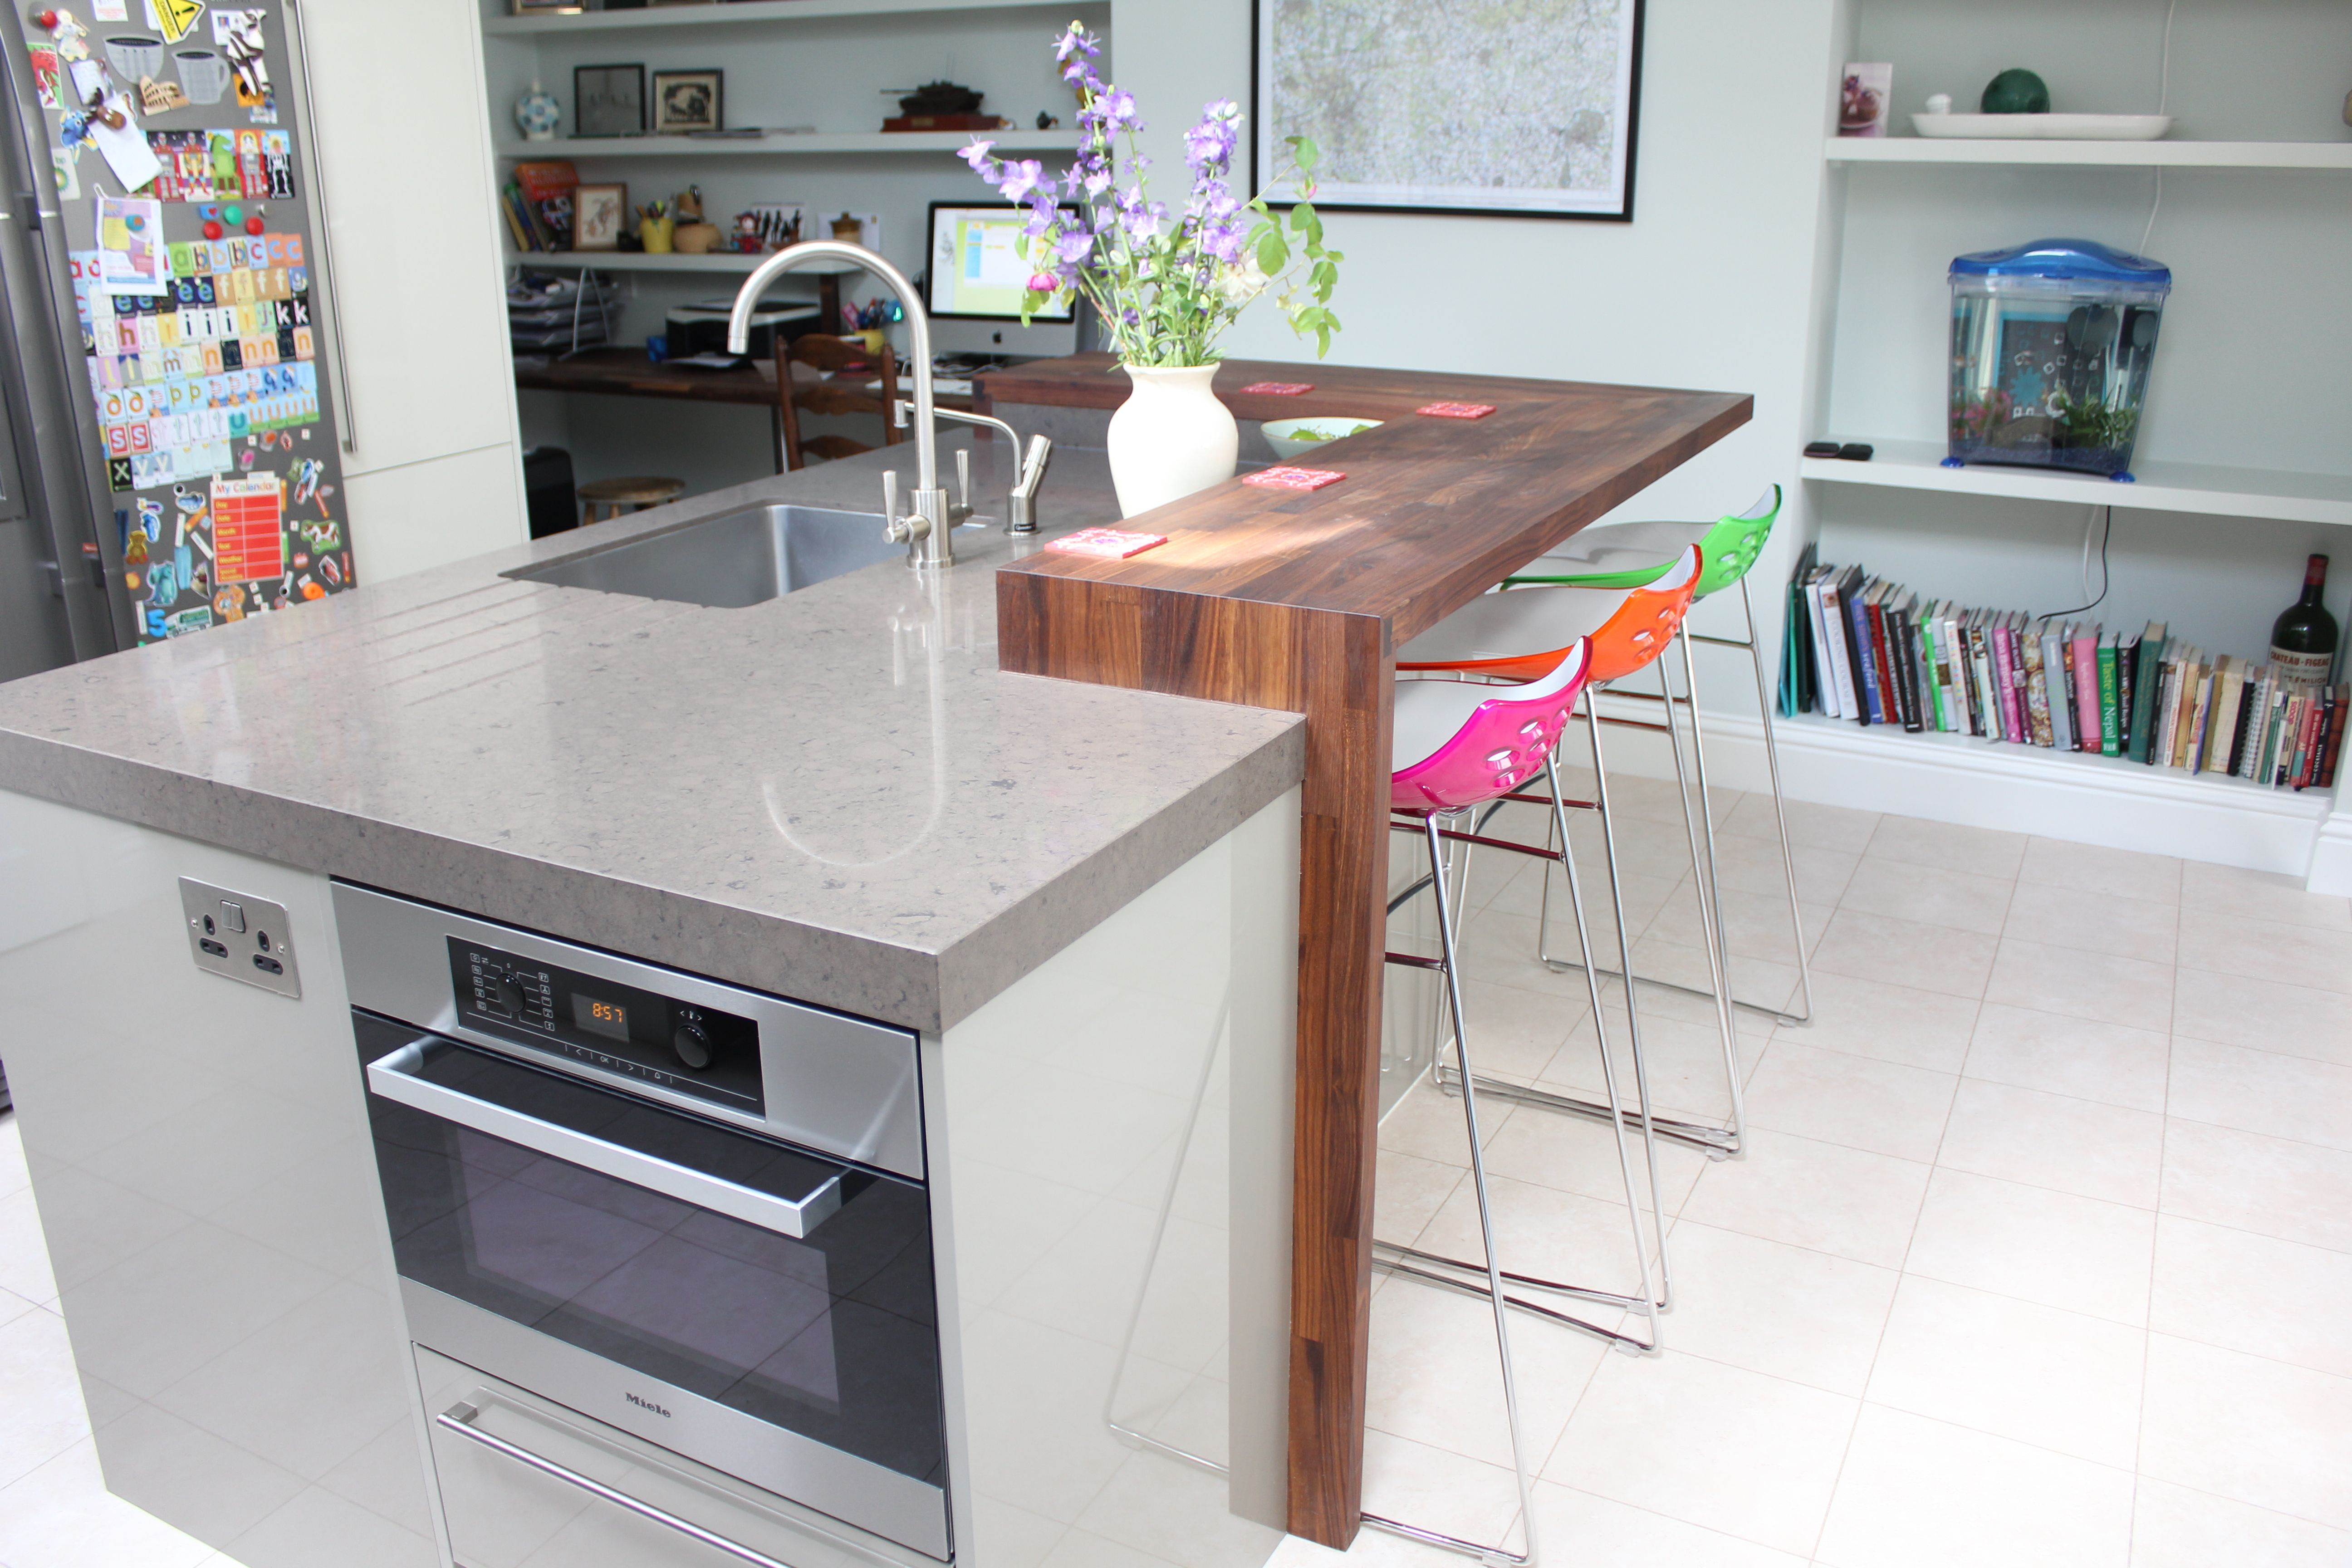 Kitchen Island Bar With Seating Island Incorporating Microwave Oven Dishwasher Sink And